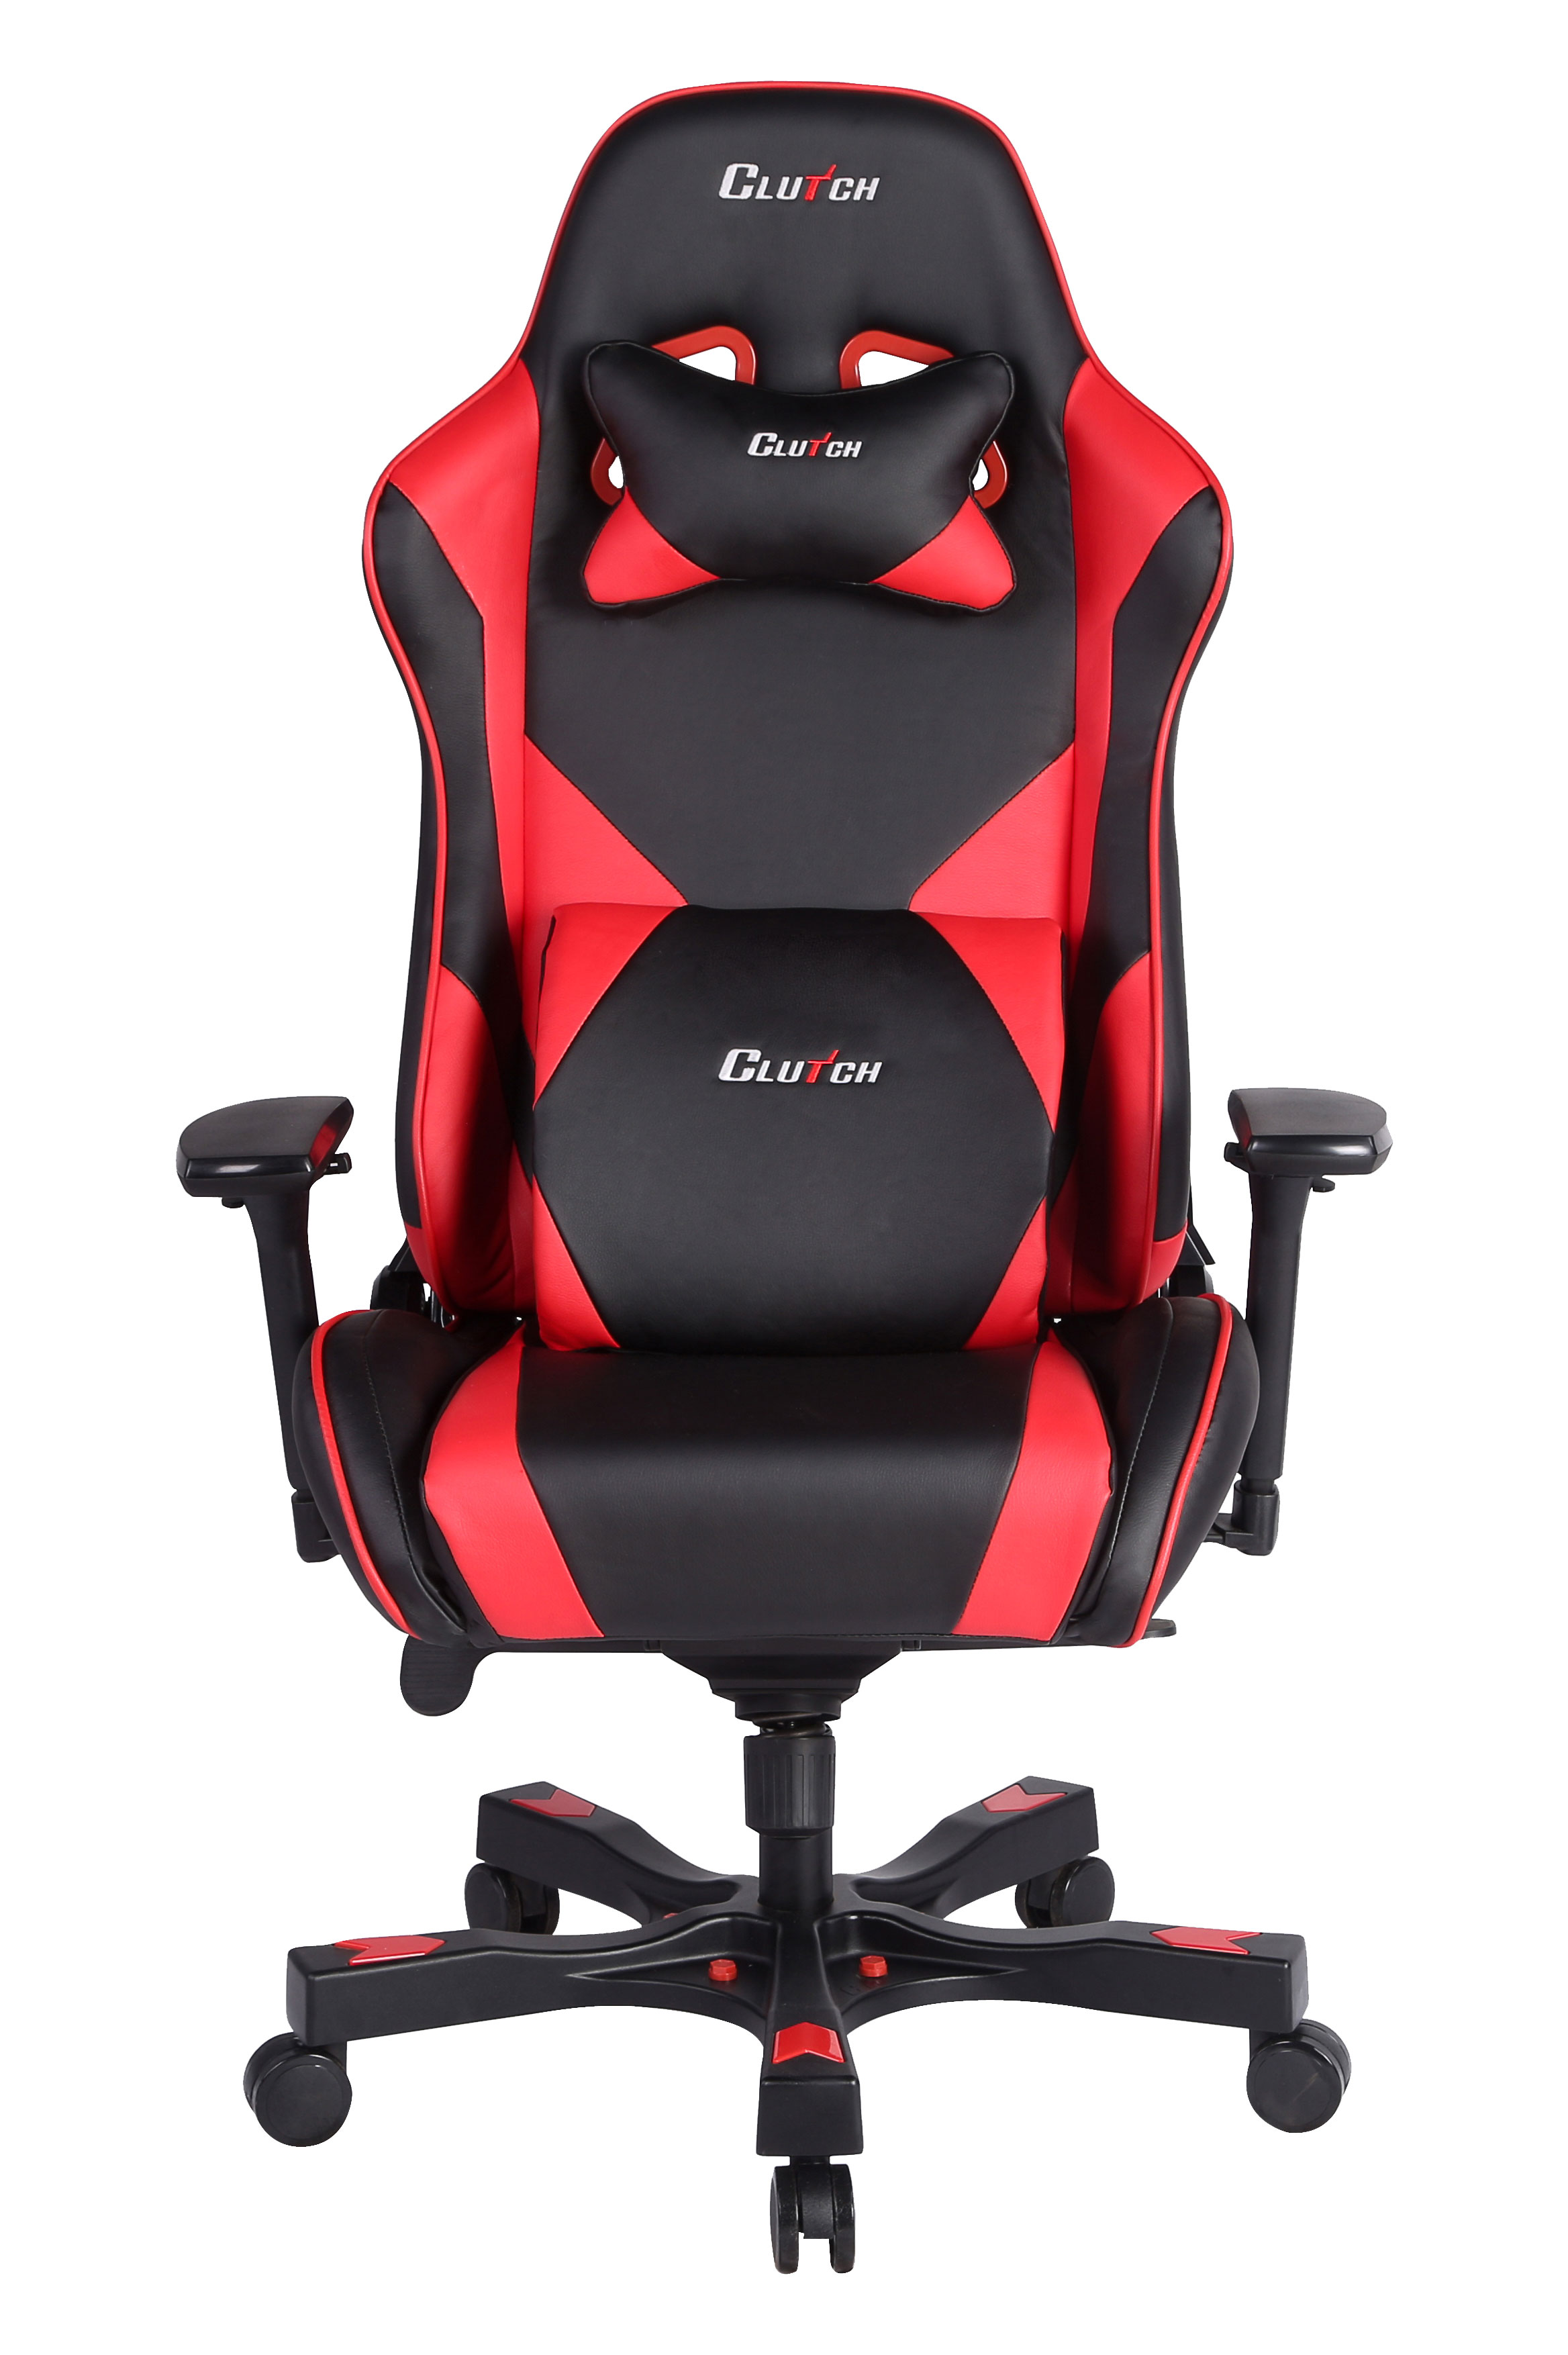 black computer chair how to hang a hanging clutch chairz premium gaming red 1 pack walmart com